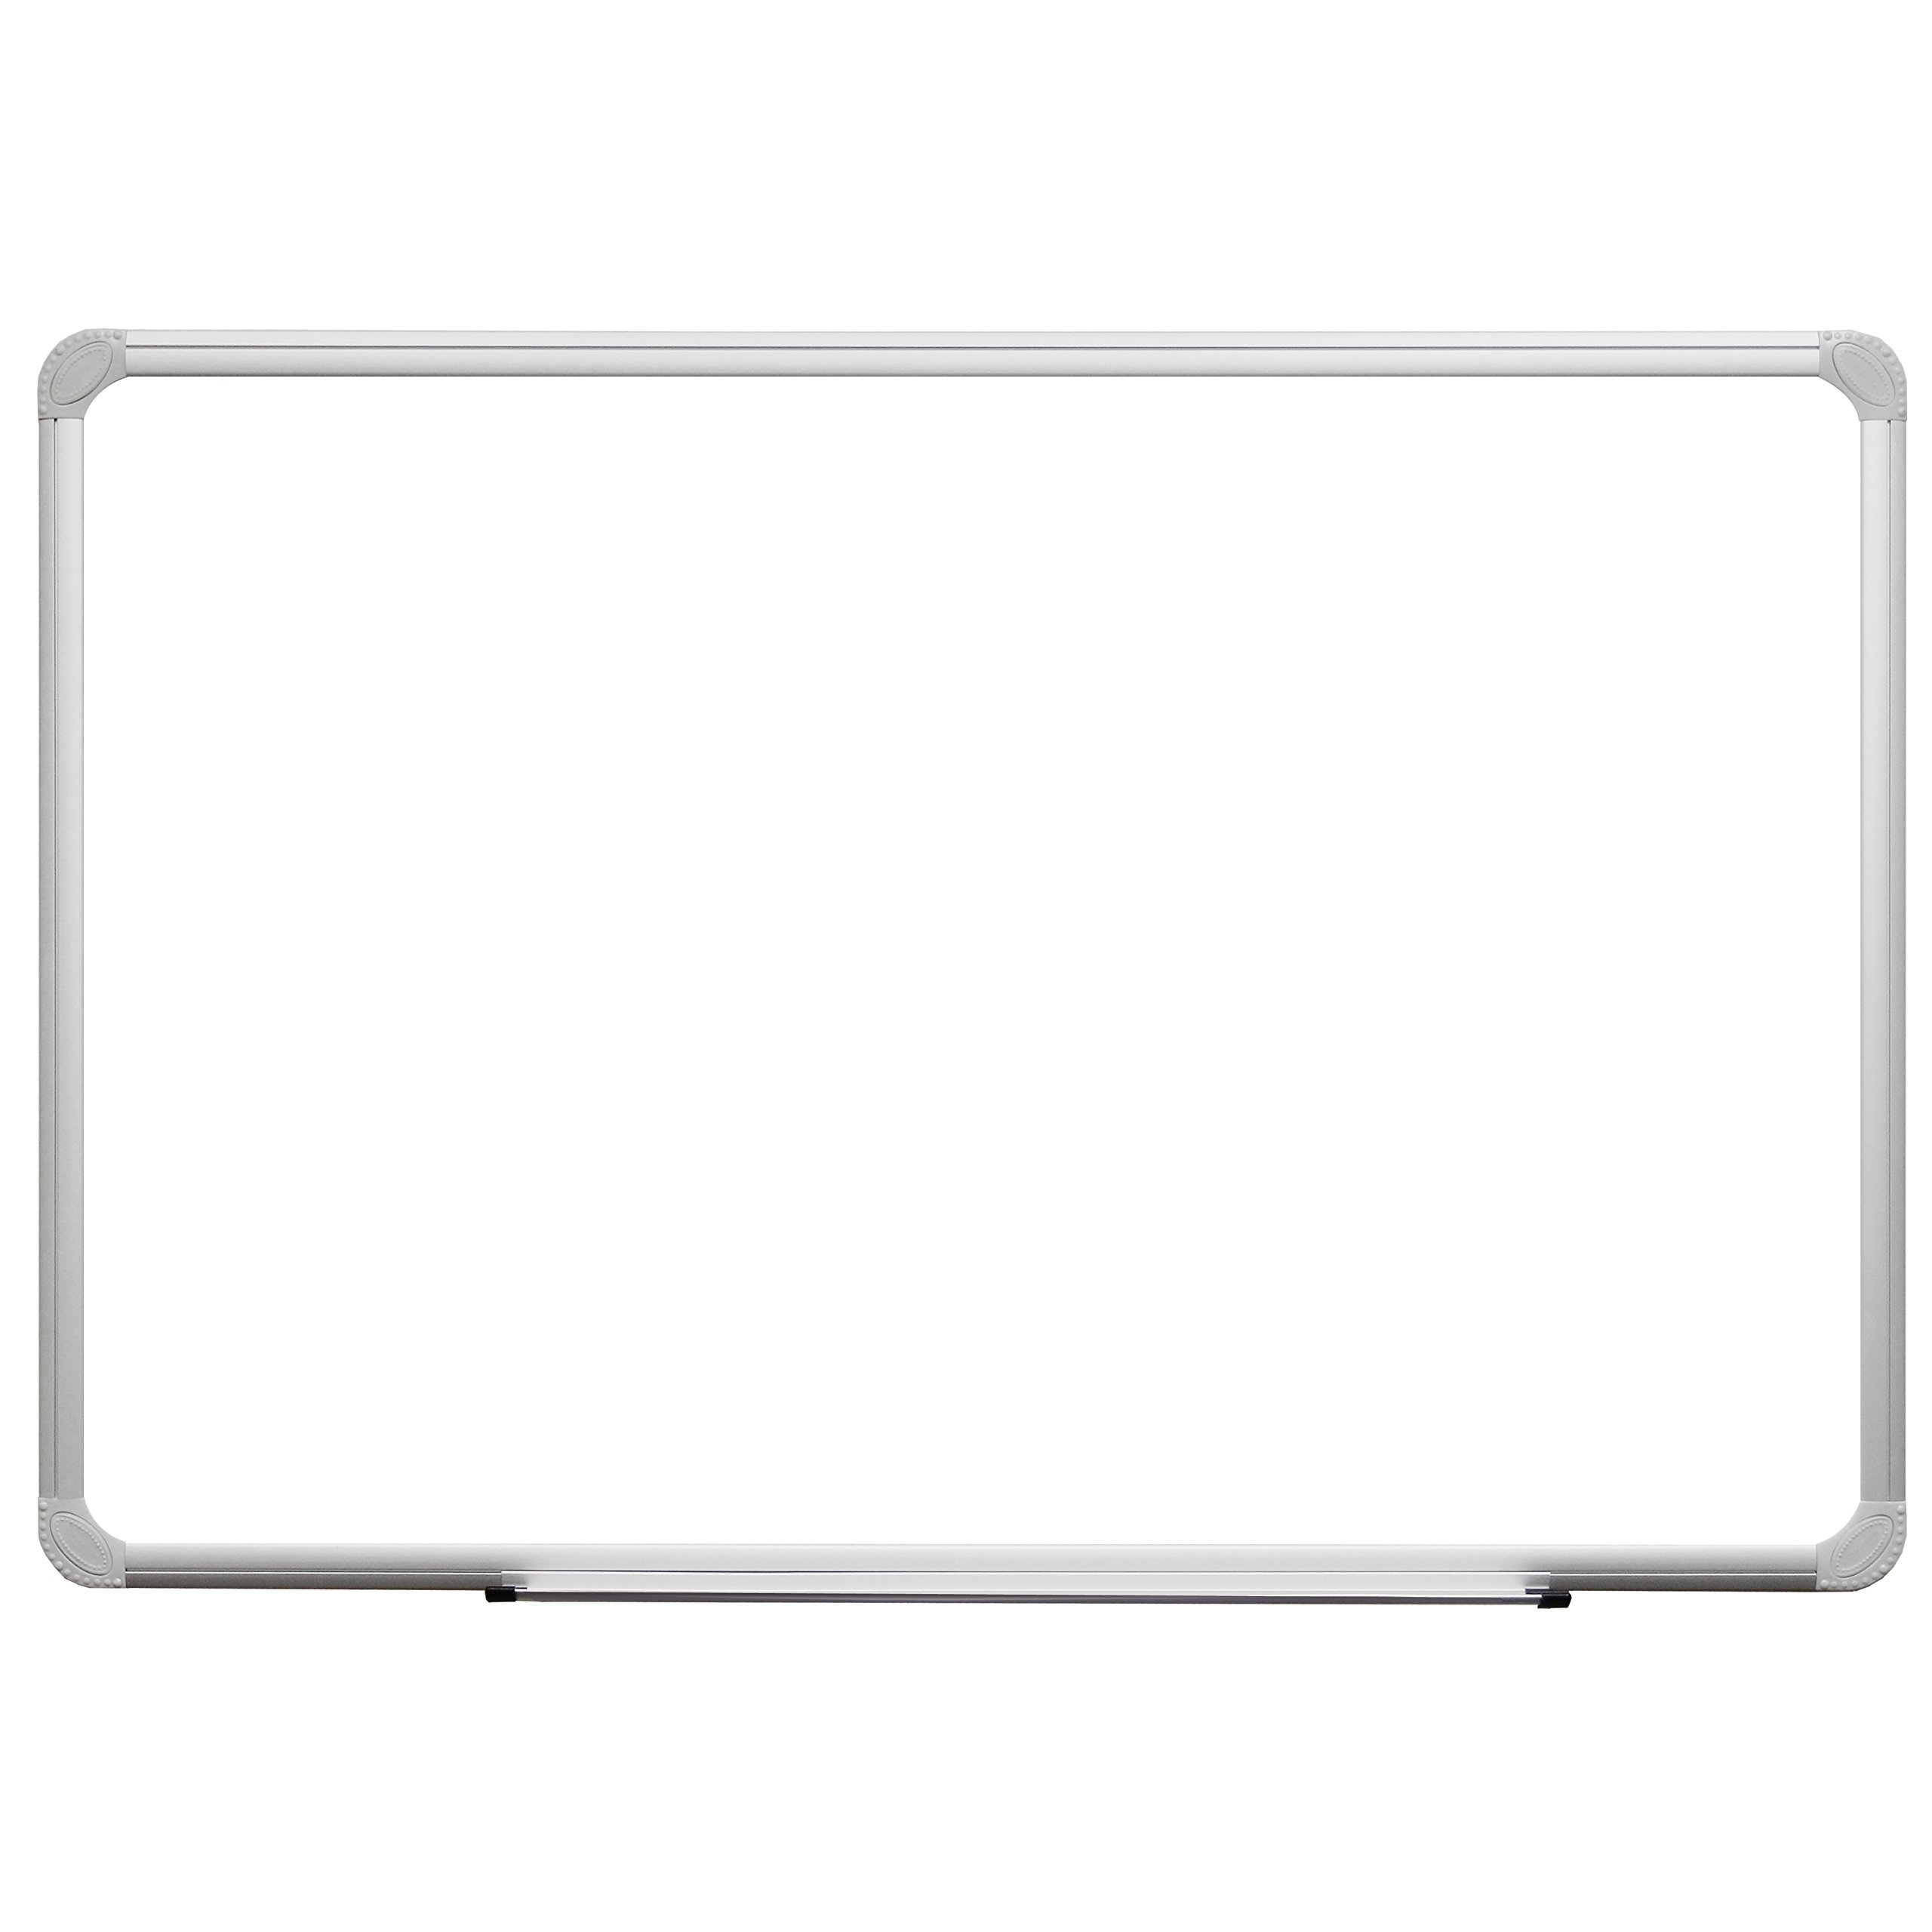 36 x 24 White Melamine Dry Erase Board with Aluminum Frame and Marker Tray